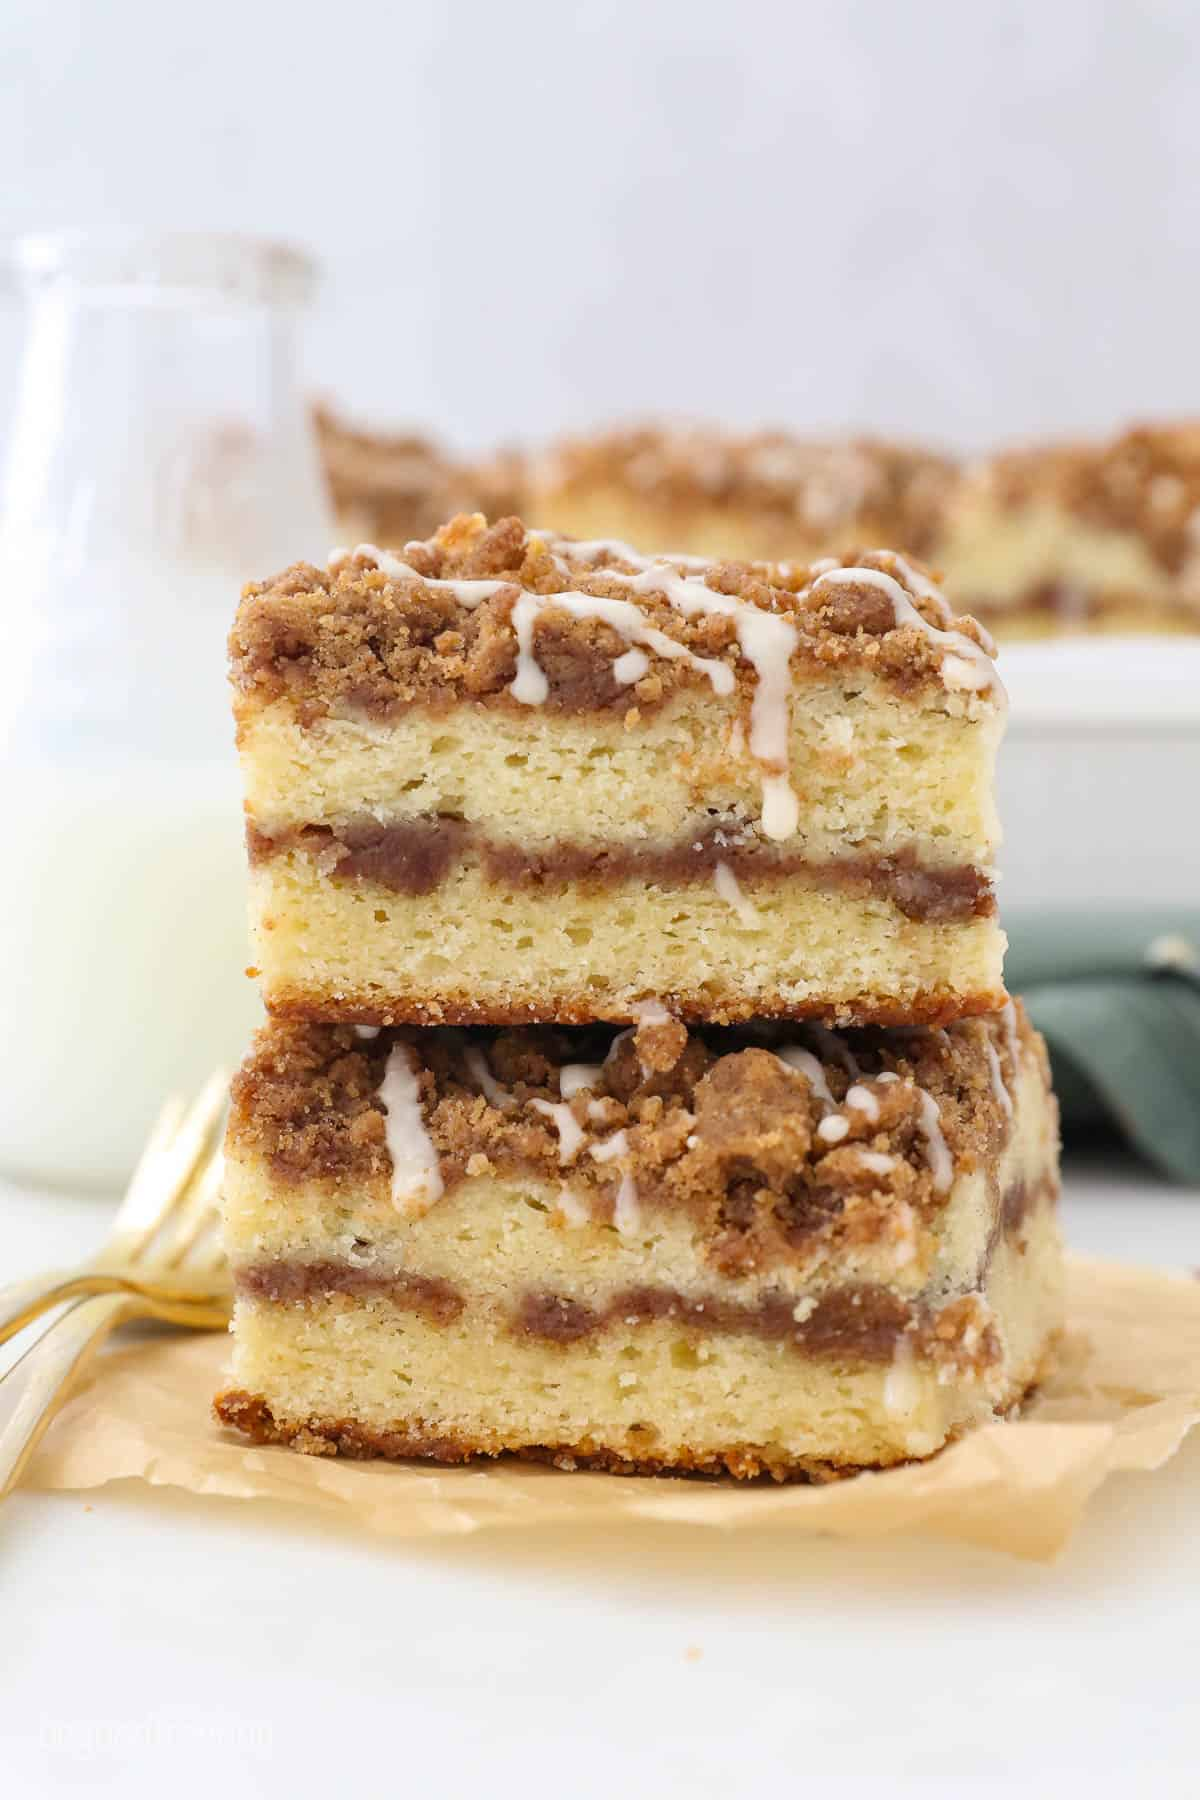 Two slices of layered coffee cake on a piece of brown parchment paper